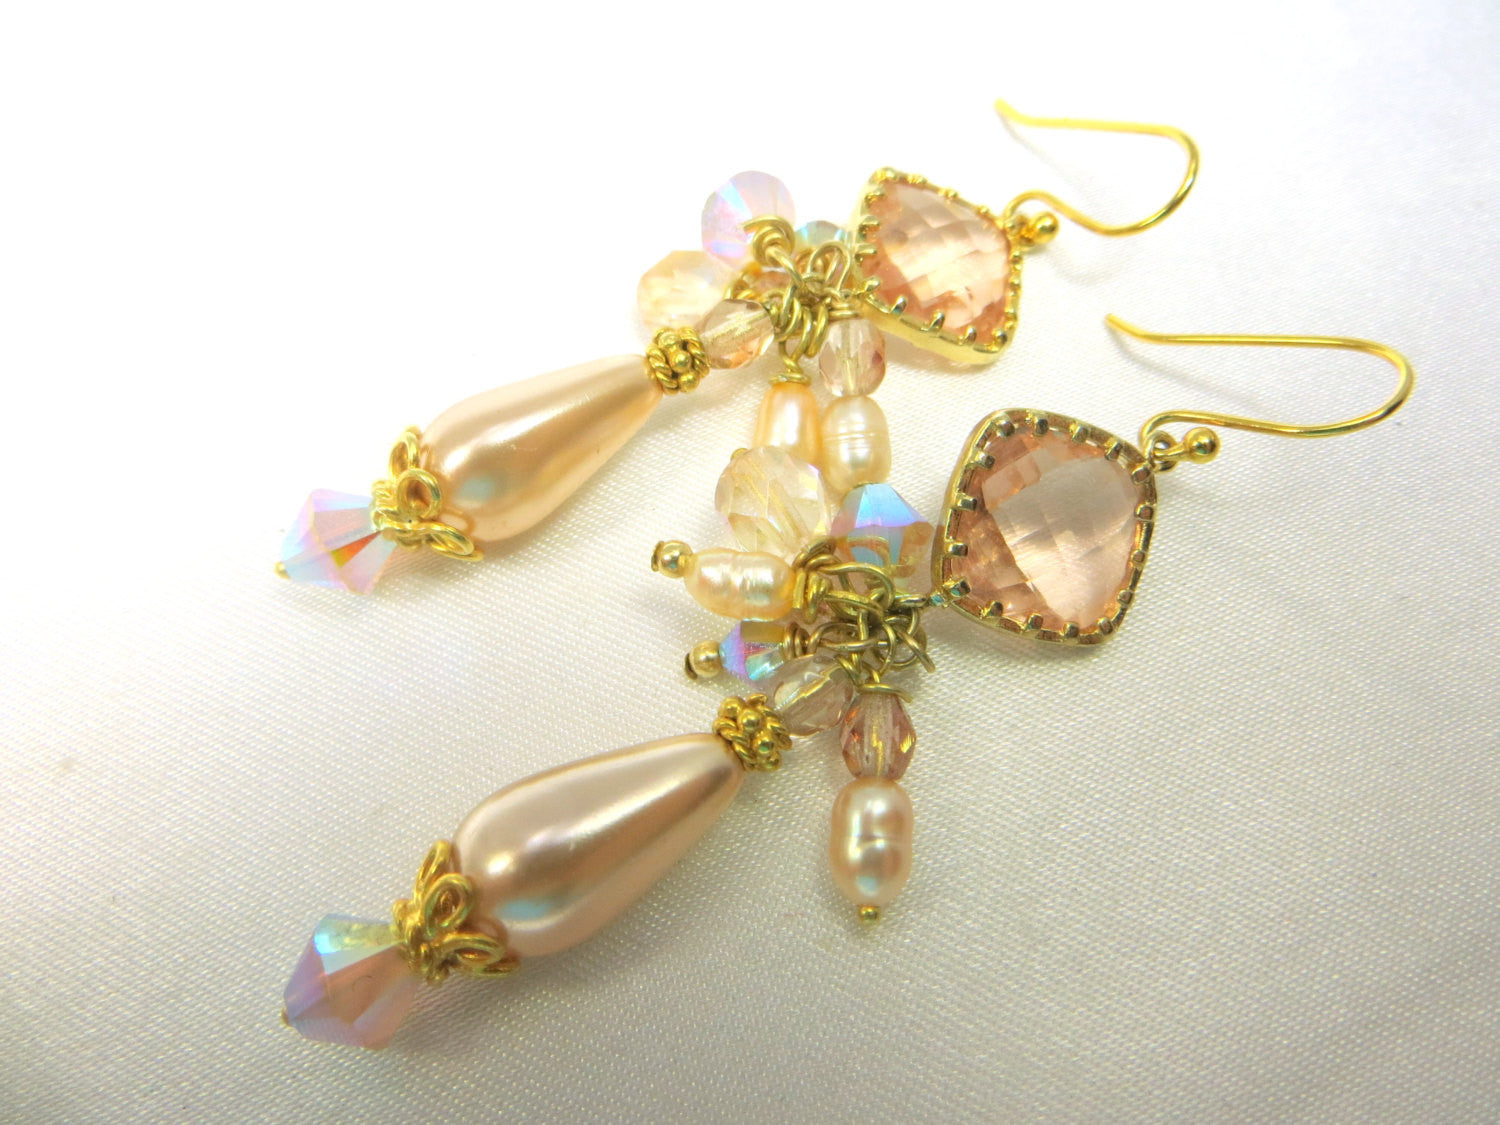 Gold Peach Pearl Earrings with Gold Wrapped Quartz Crystal - Odyssey Creations